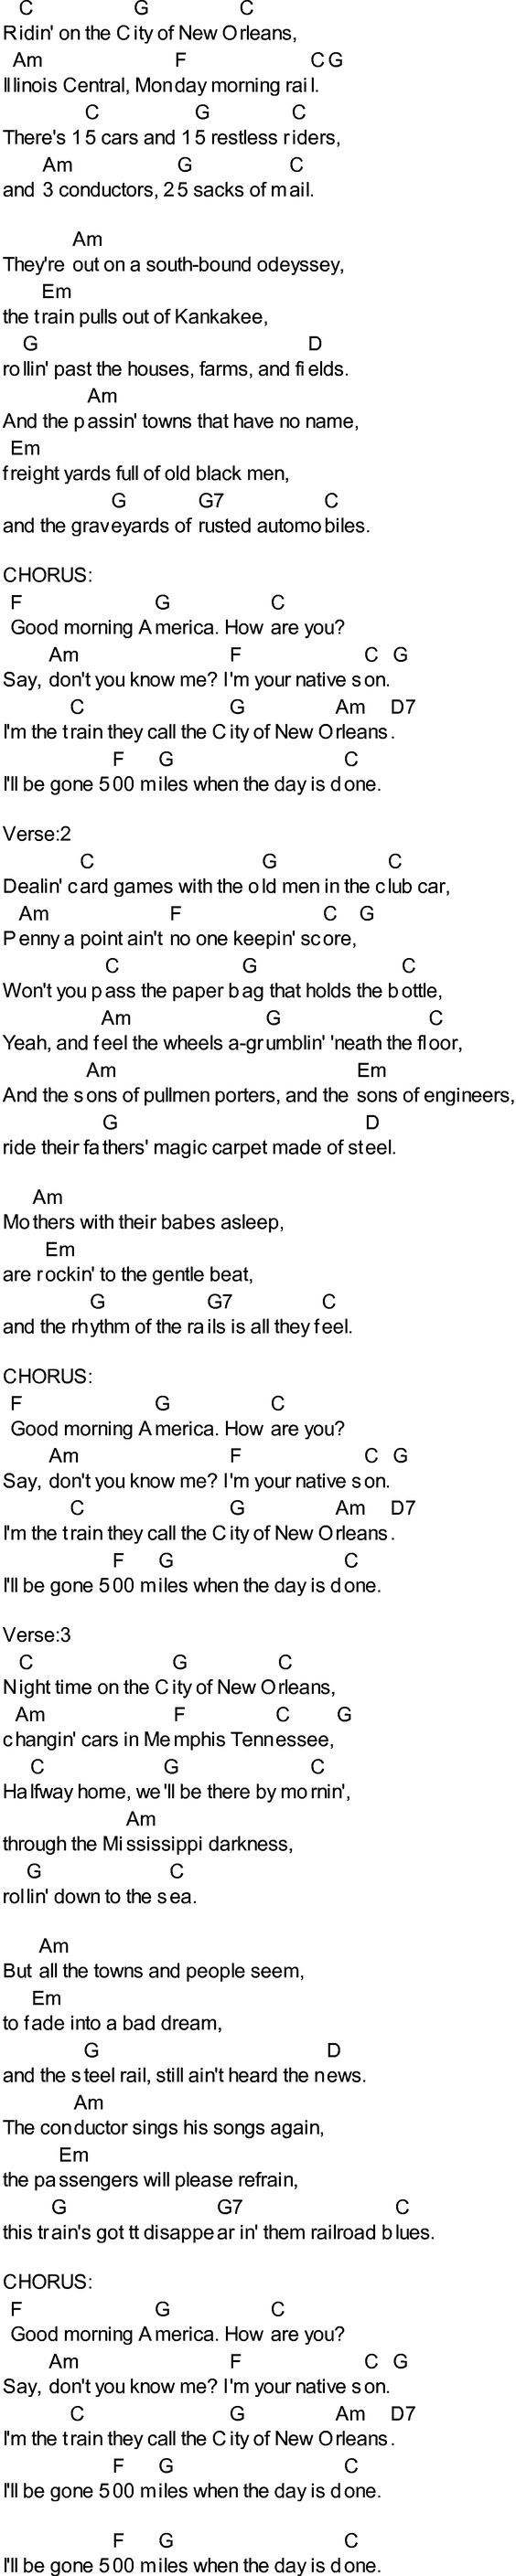 Bluegrass Songs With Chords City Of New Orleans Lyrics Music